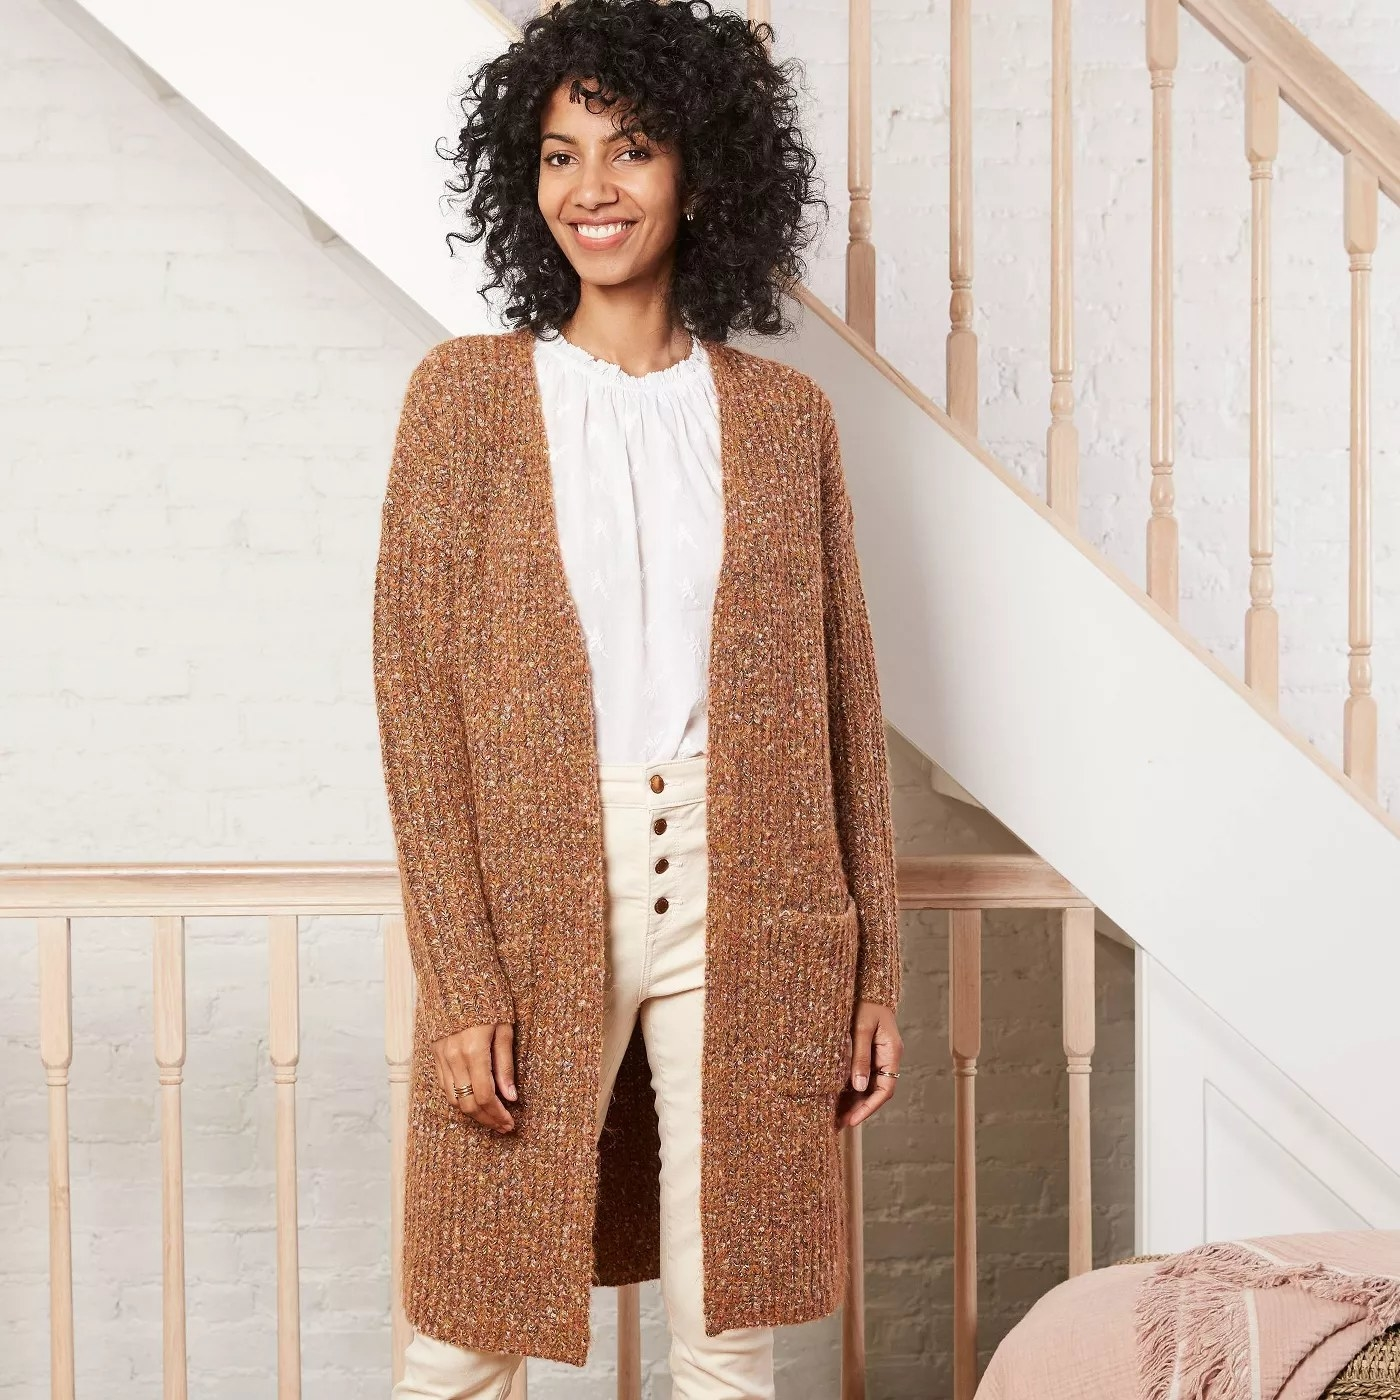 Camel colored Knitted duster that is knee length. Paired with high waited pants and white blouse.